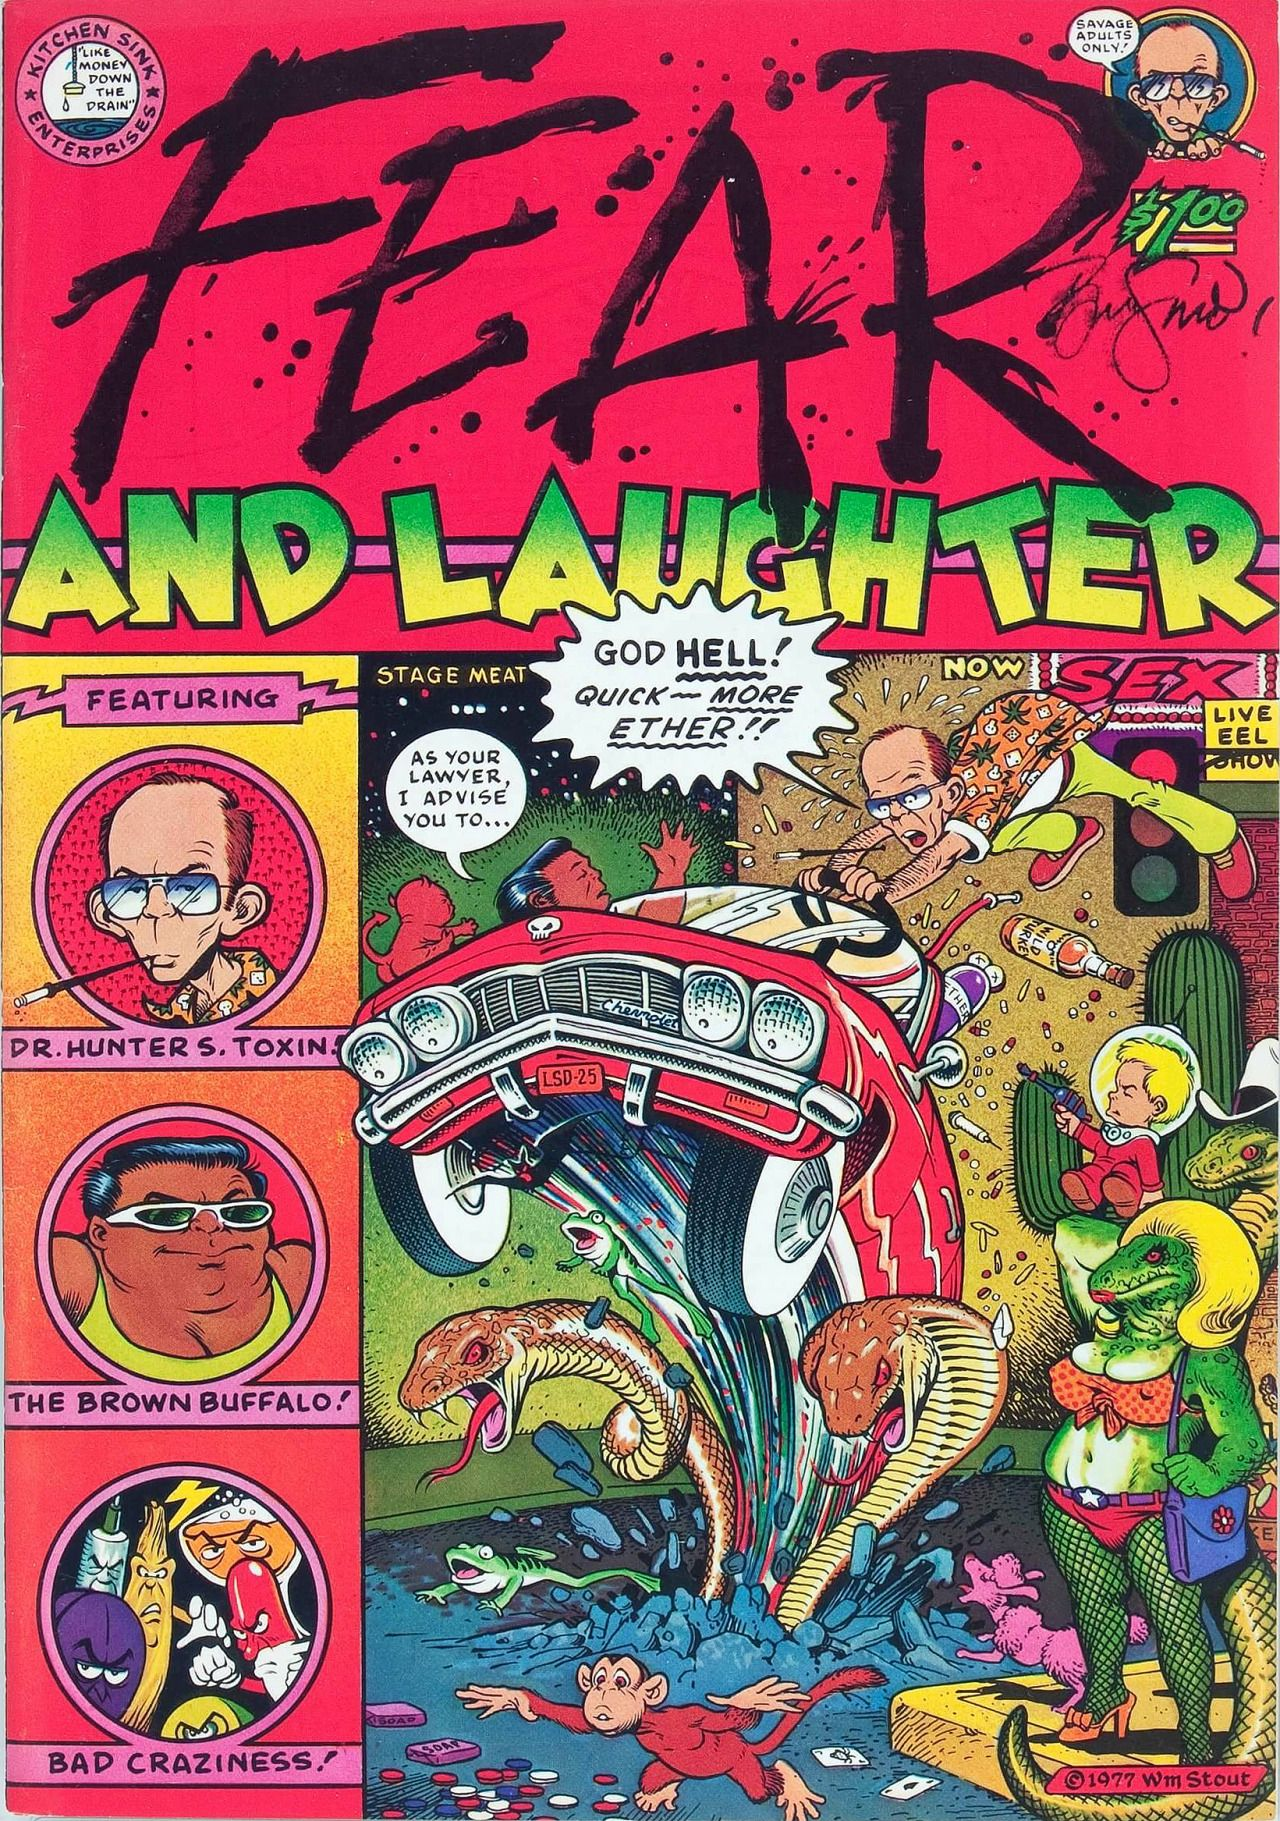 cover by William Stout from Fear and Laughter #1, published by ...